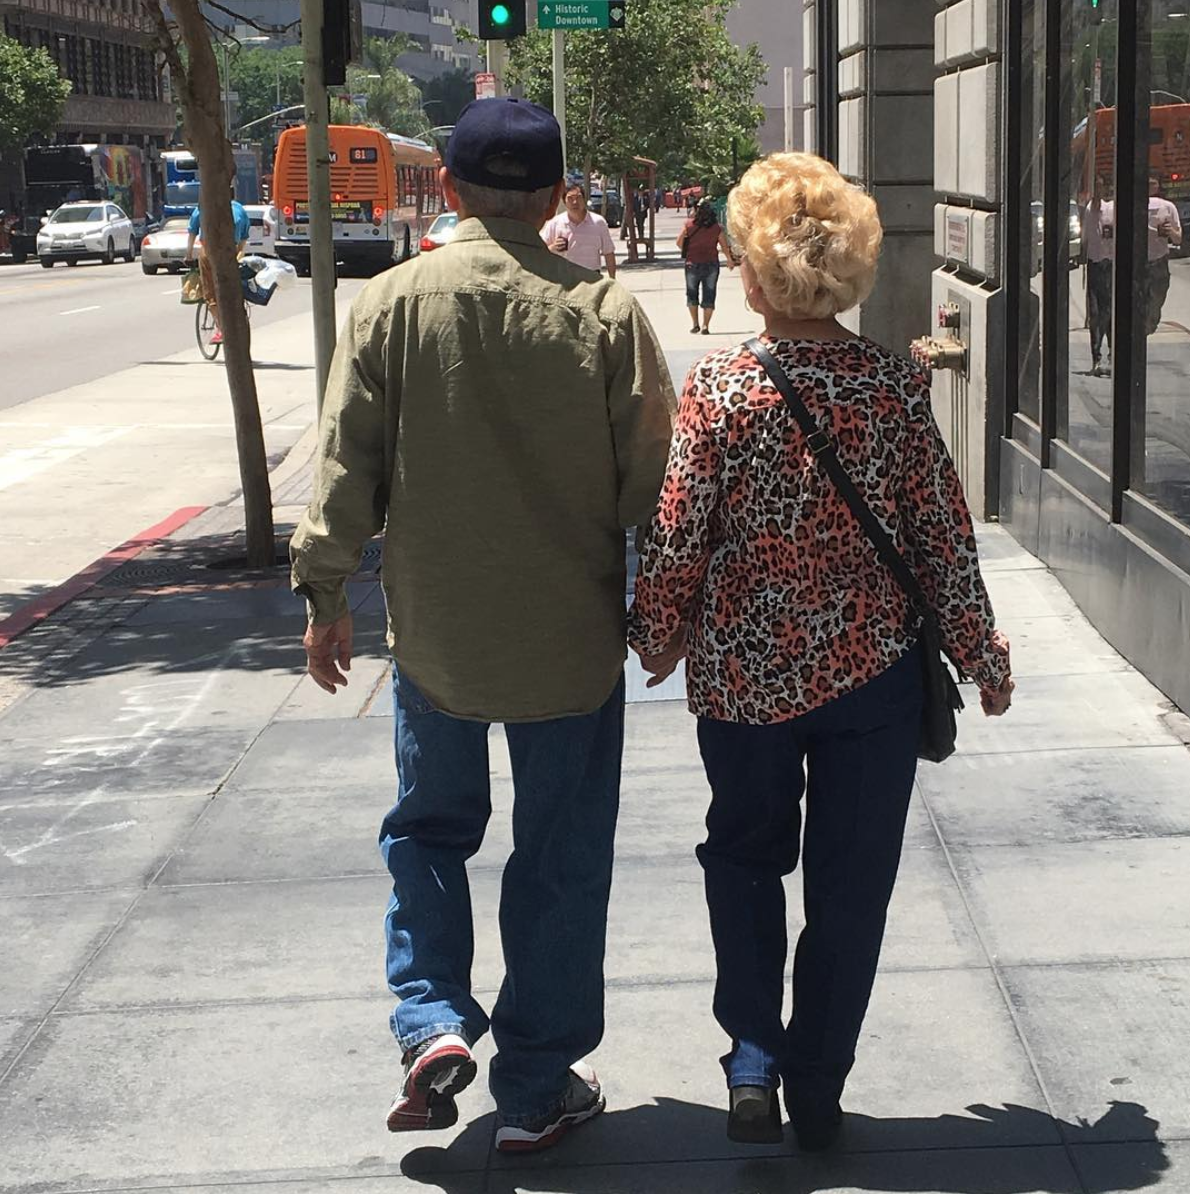 Walking hand in hand in Downtown LA